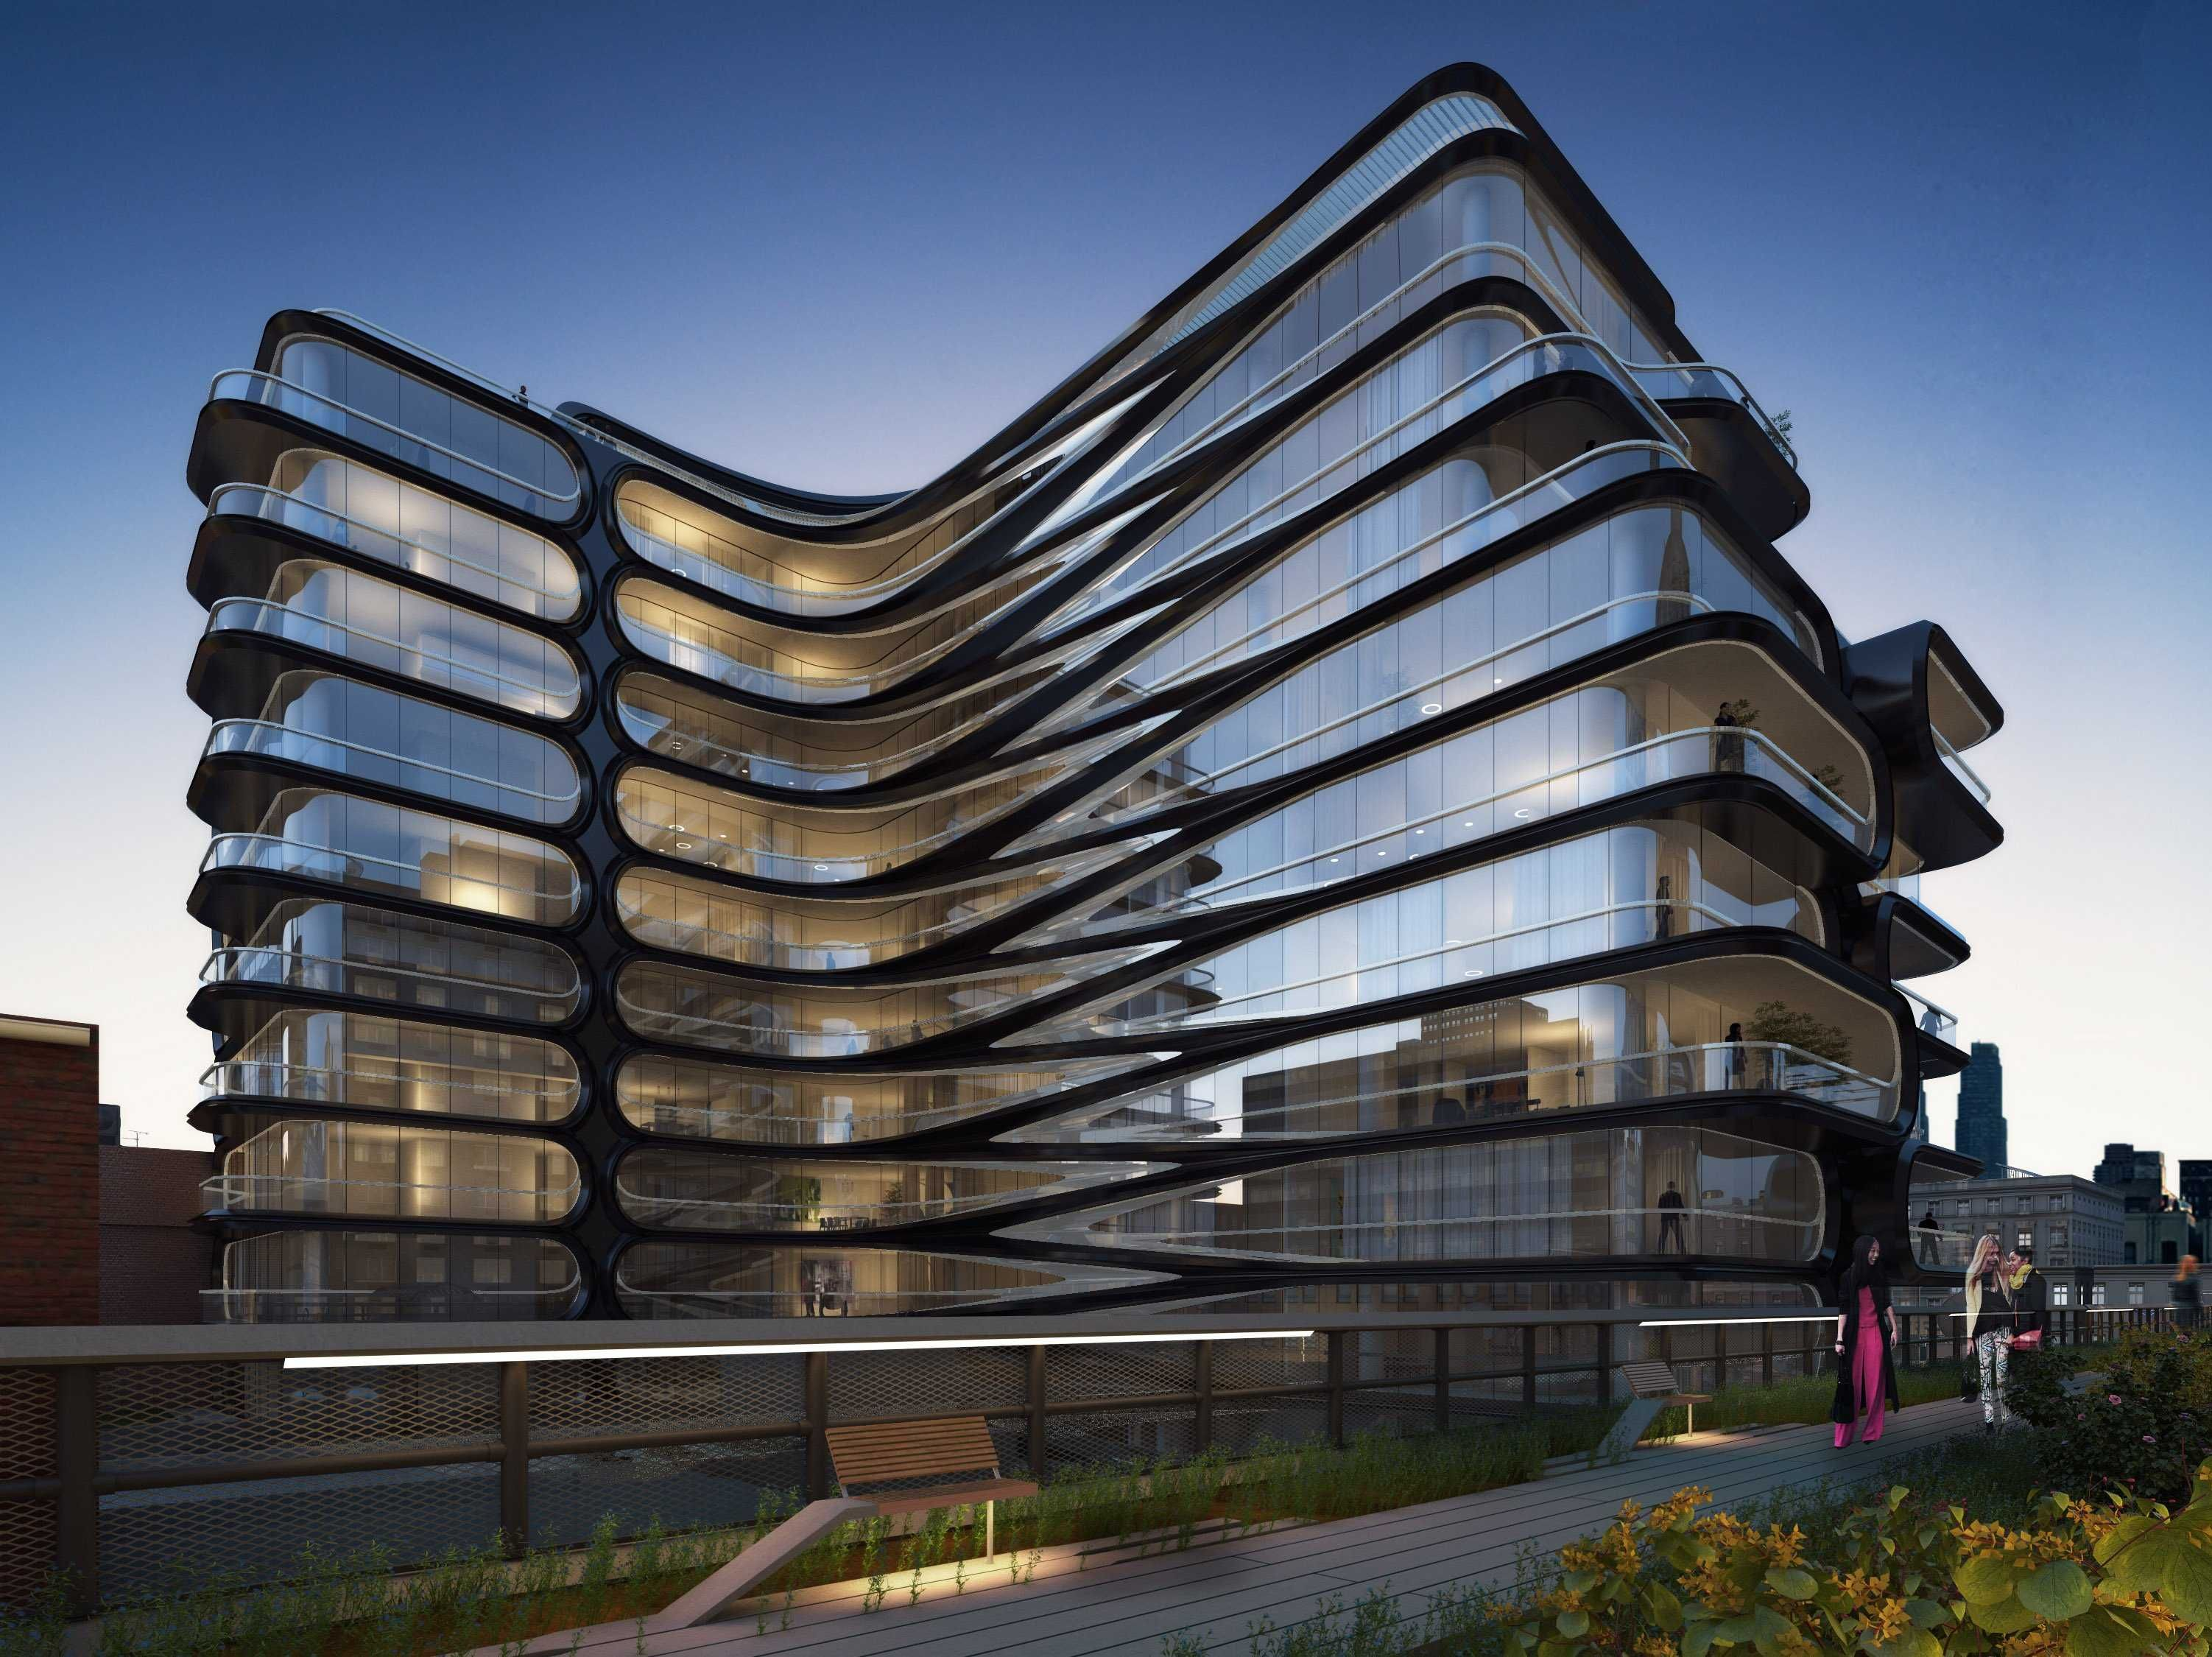 Famed Architect Zaha Hadid Unveils Her First Building In